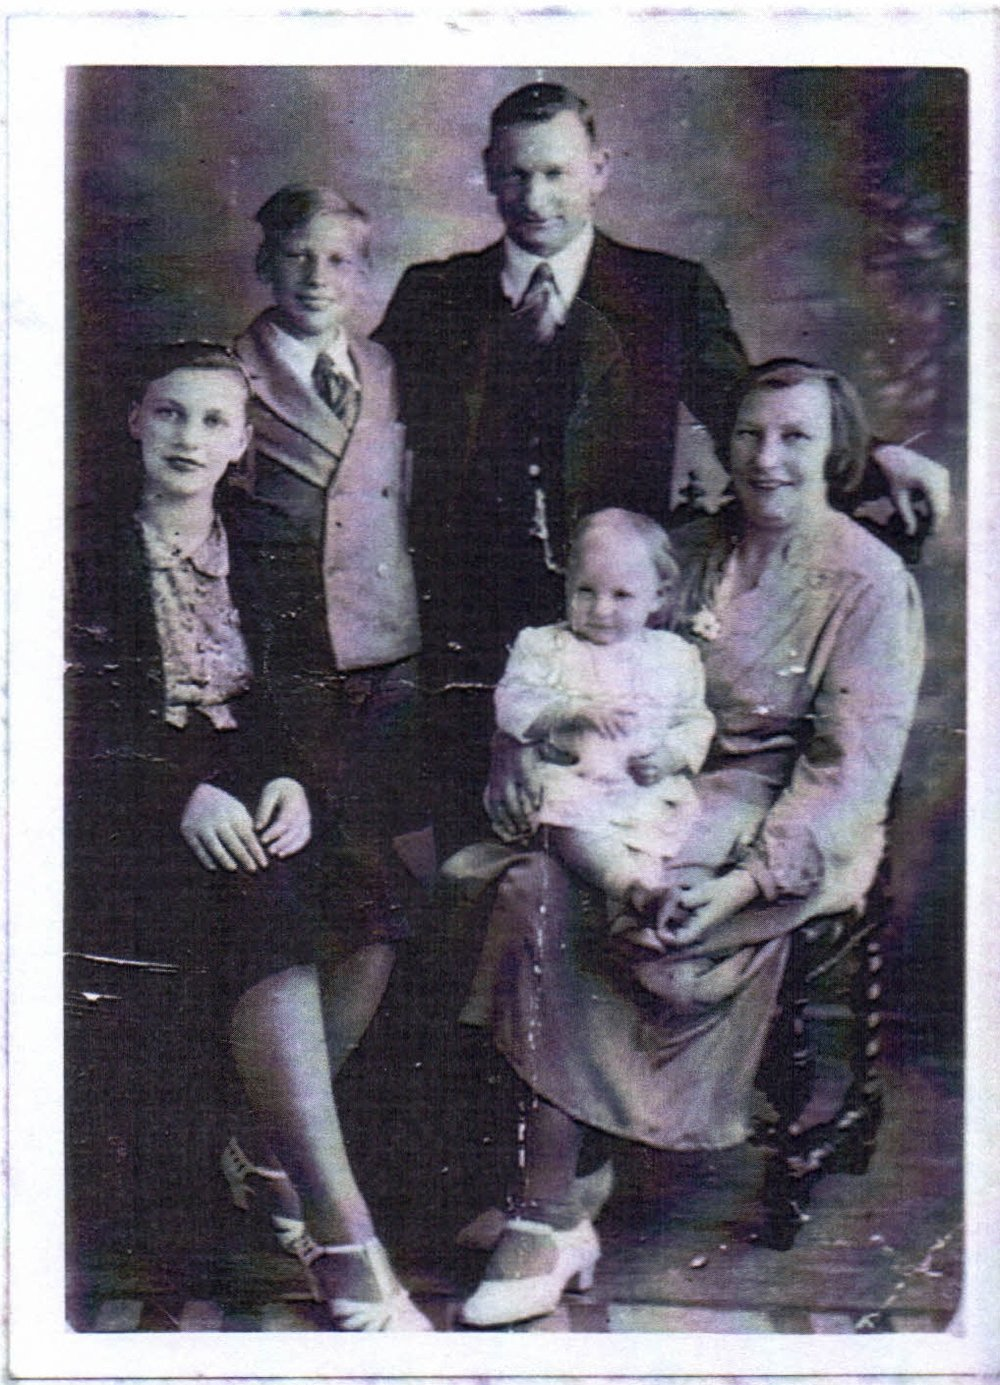 W.T. Booth and family - David's grandfather Tom is standing at the back. David's late mother Doreen is sitting on his Grandmother Elsie's knee. Far left are David's Aunt Rene next to brother, David's Uncle Bill. (Credit: David Yates)